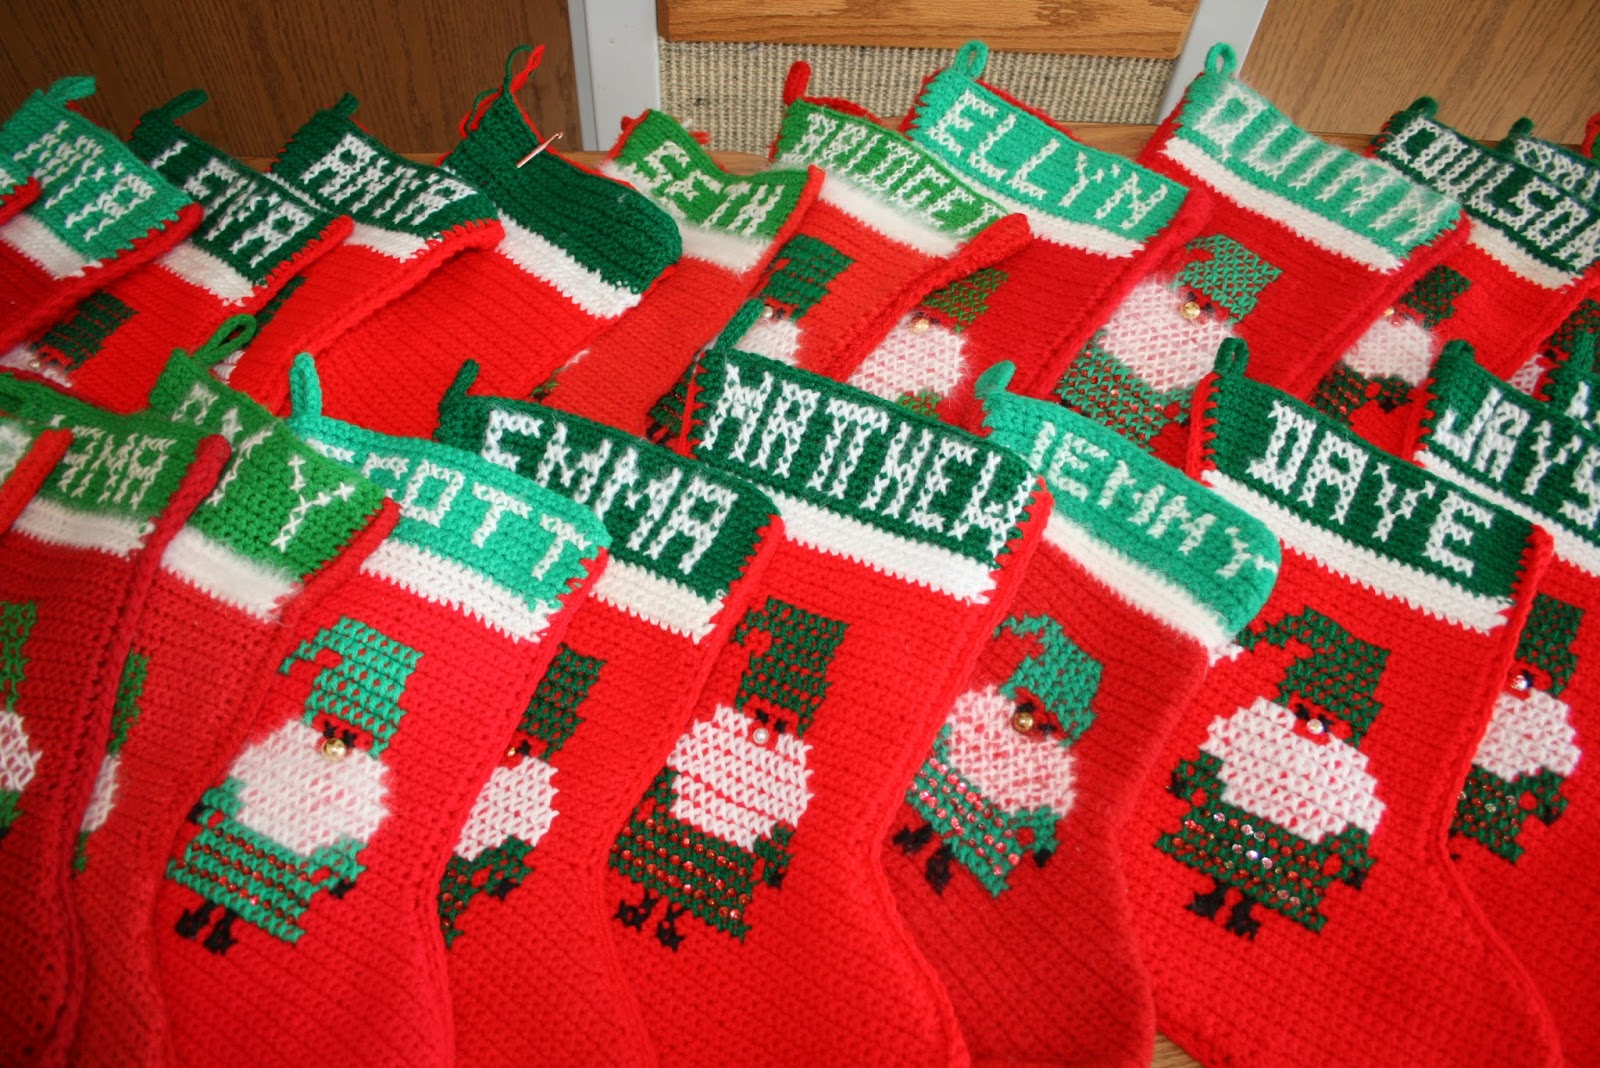 History Of Christmas Stockings.Revealing Roots And Branches Incorporating Family History